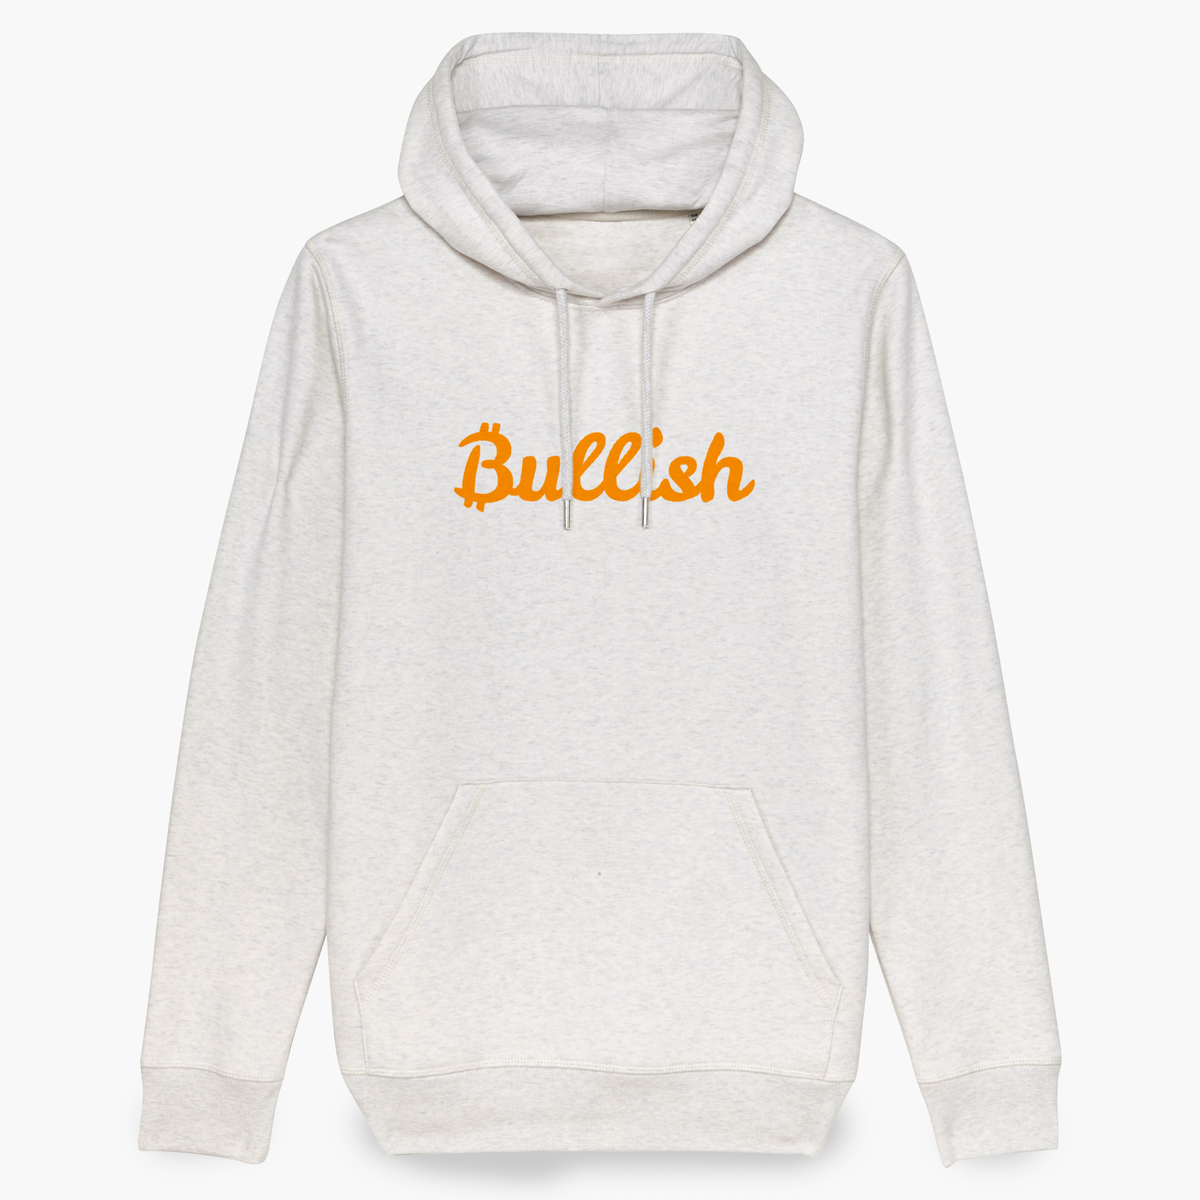 Bullish Hoodie - Orange BTC